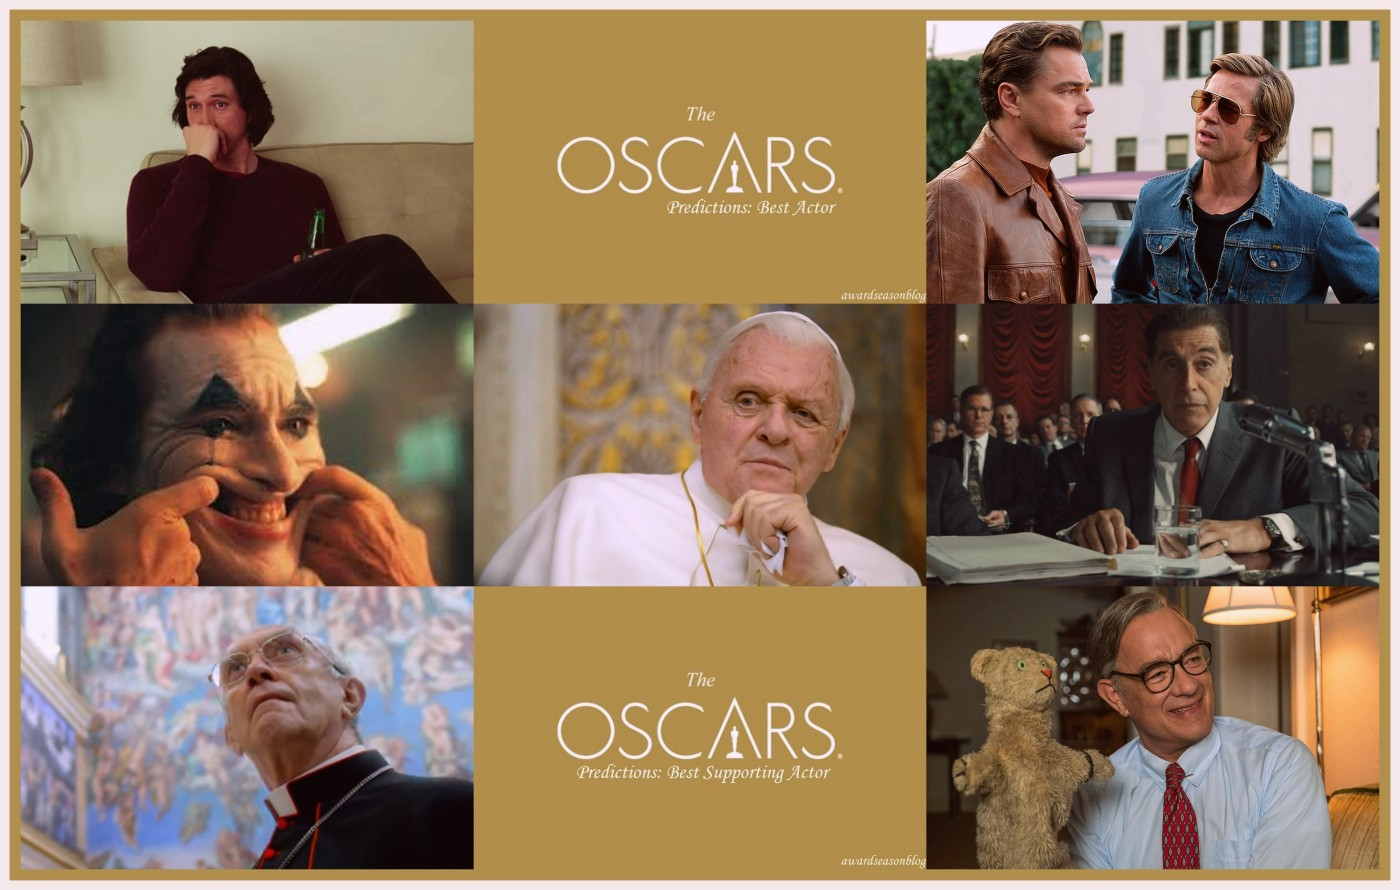 Best Actor Oscars 2020.Oscars 2020 Gli Attori Piu Quotati Per Le Categorie Best